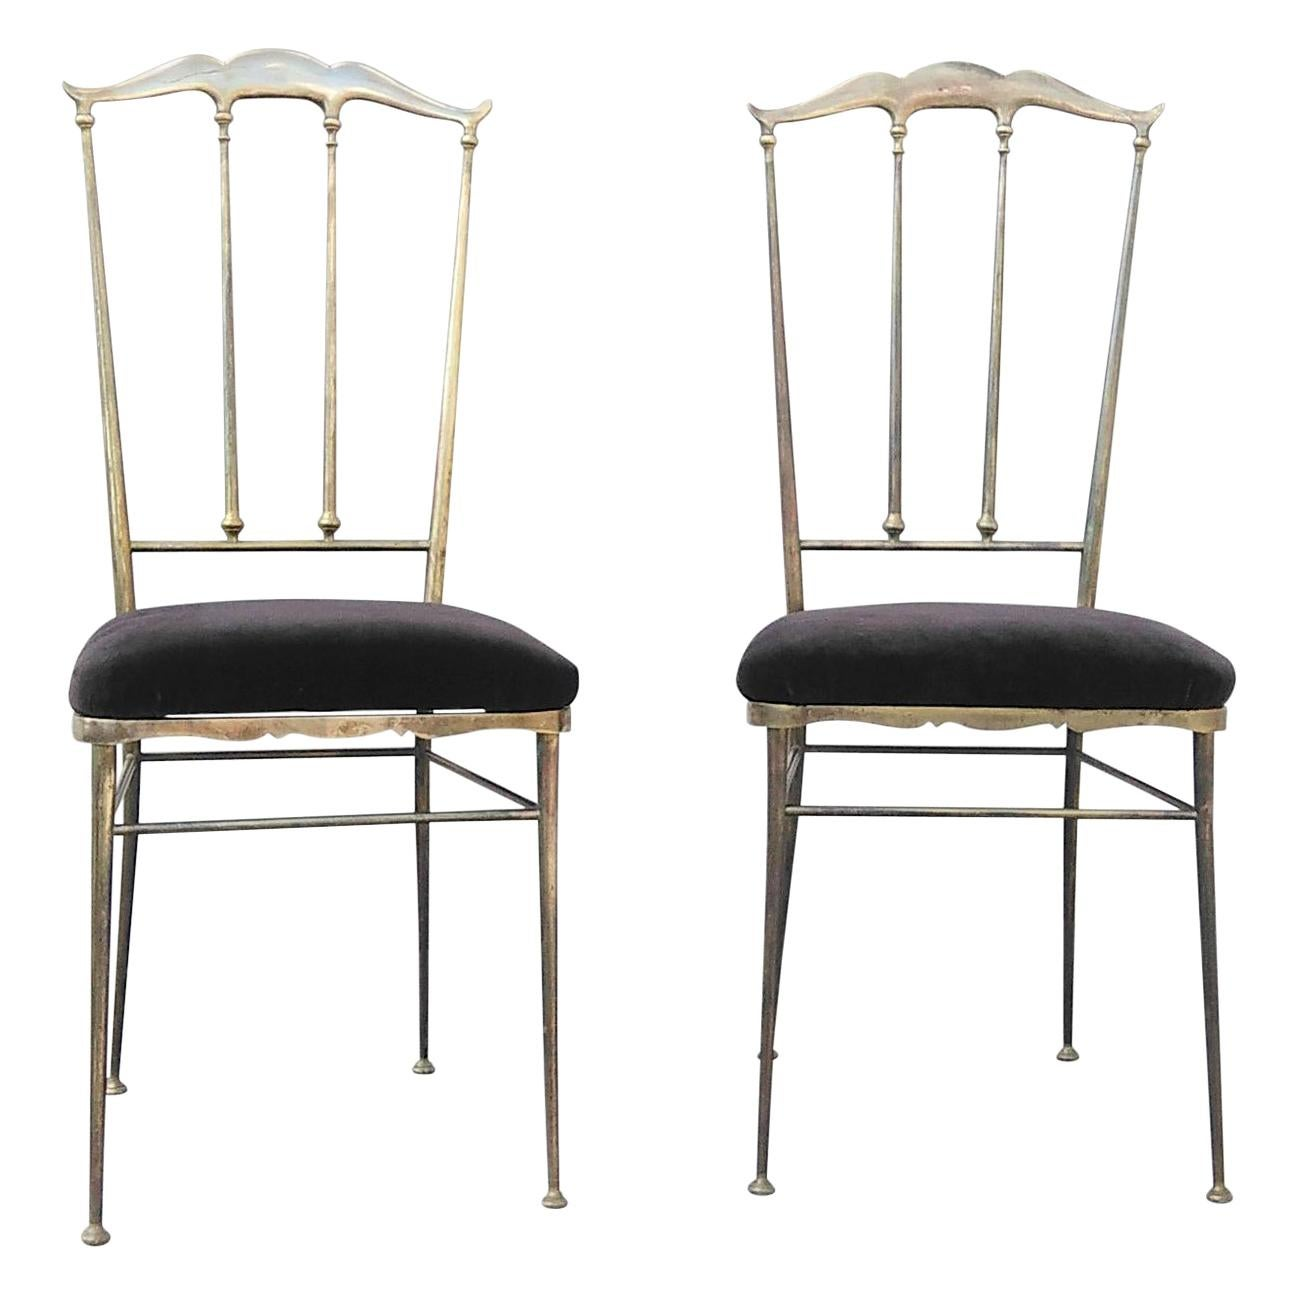 Chiavari Pair of Solid Brass Chairs, Italy, 1960s